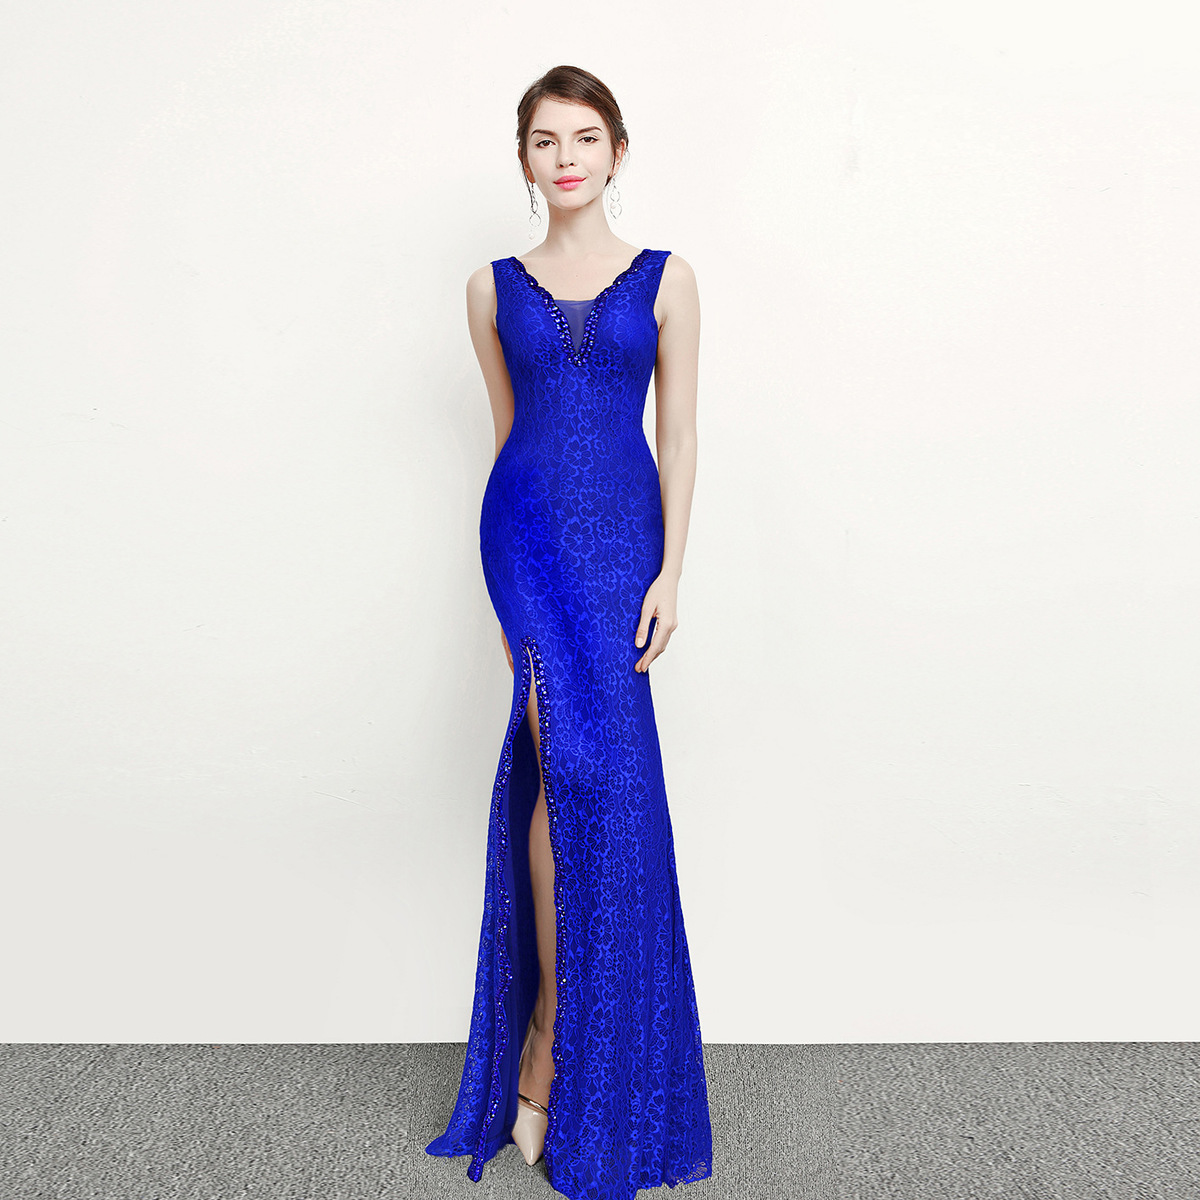 New Arrivals fiowers pattern appliques deep v reveal back evening dress v-neck simple sleeveless foor-length mermaid Hot Sale